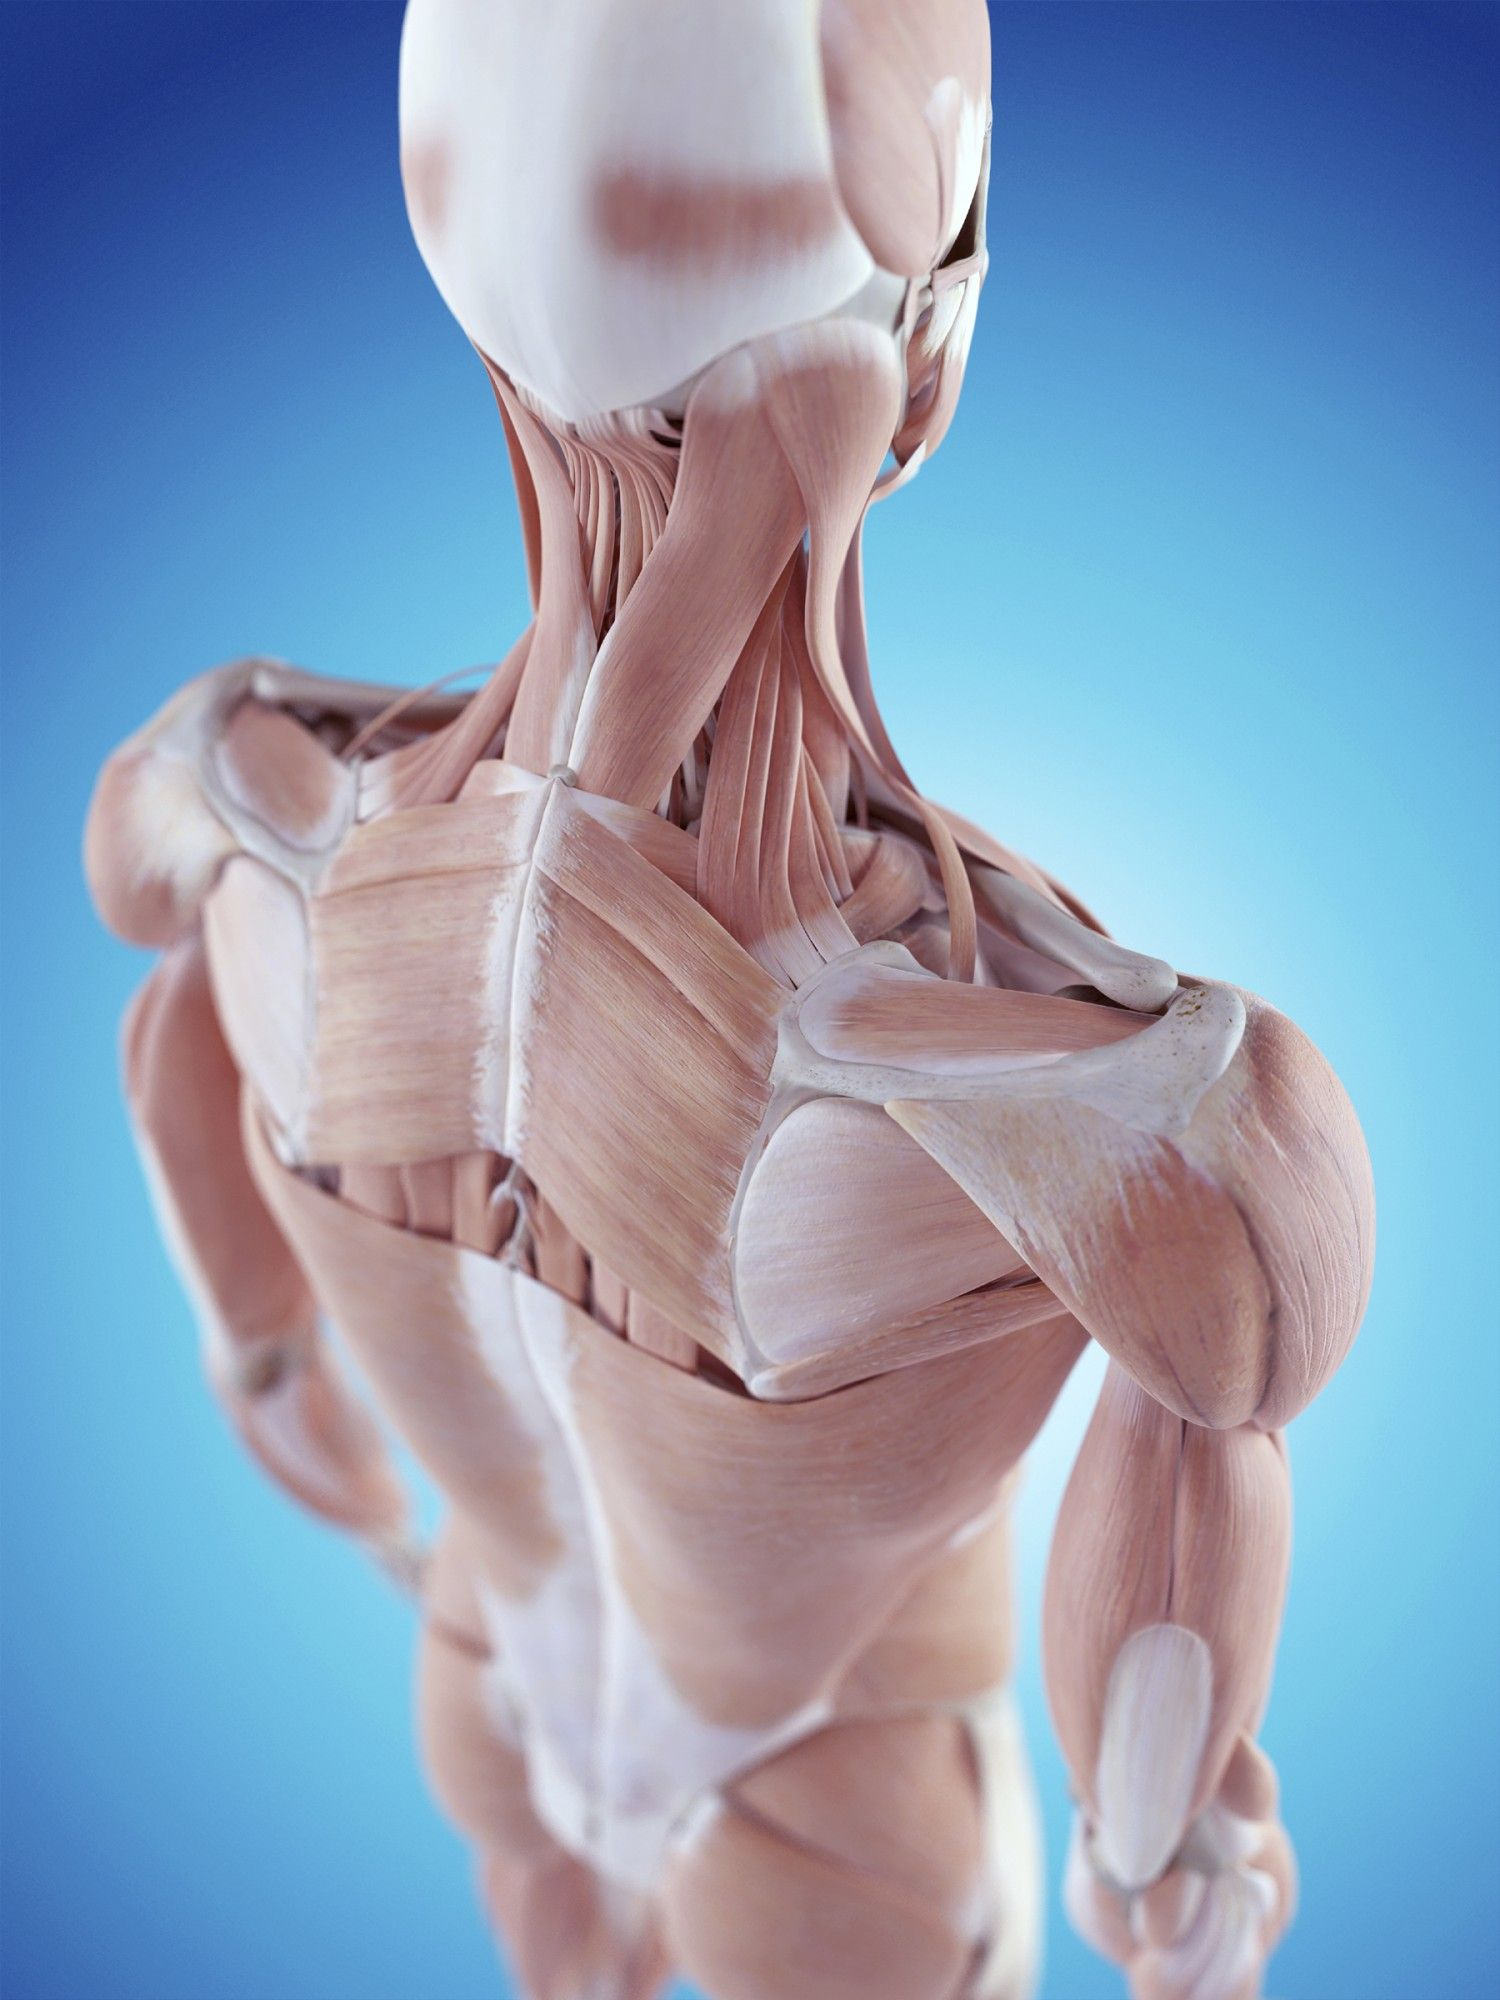 Shoulder pain and shoulder injuries related to the rotator cuff are ...